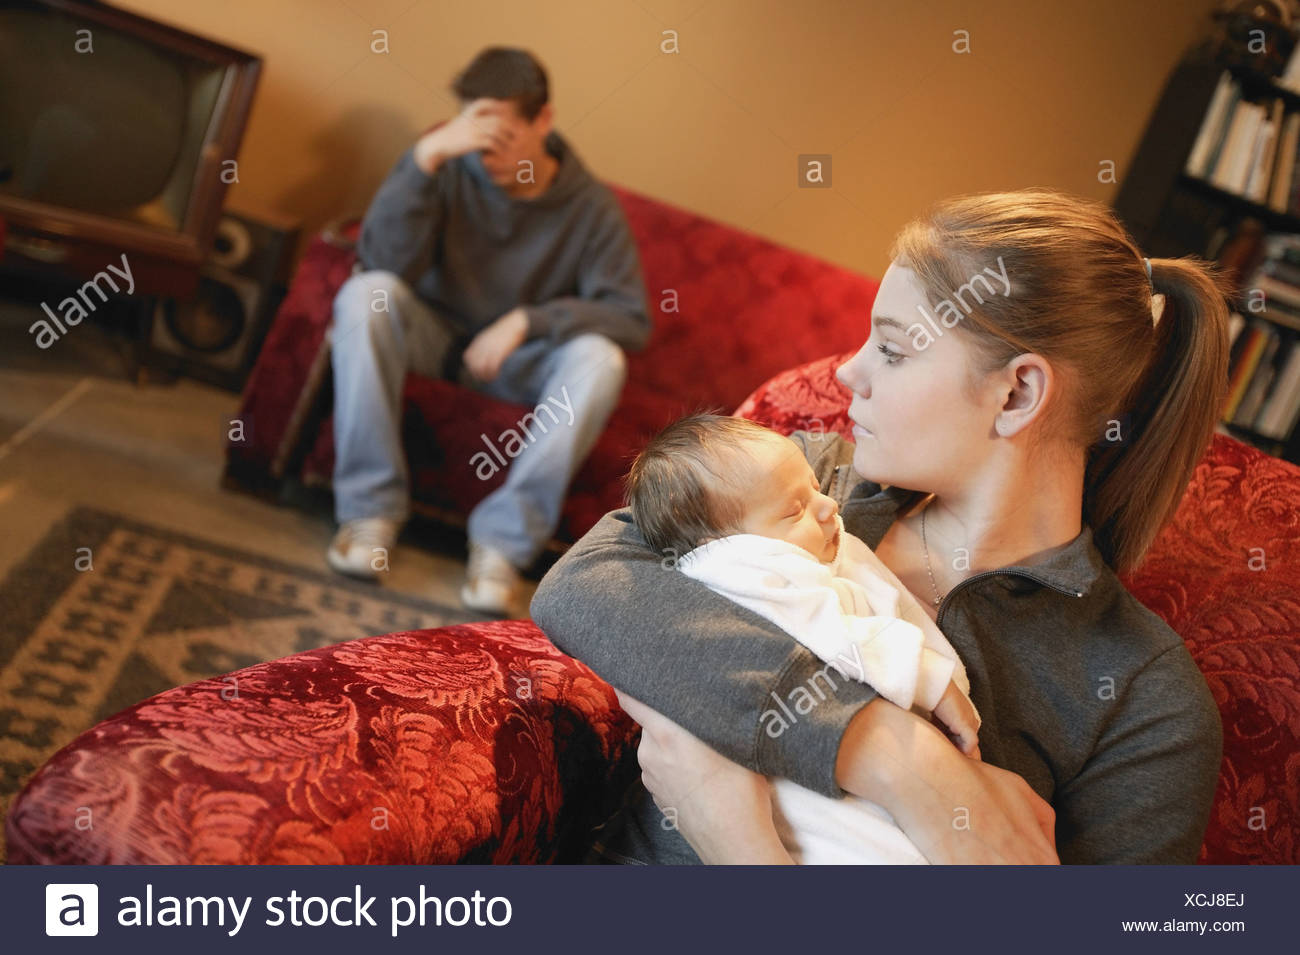 Young couple with baby - Stock Image